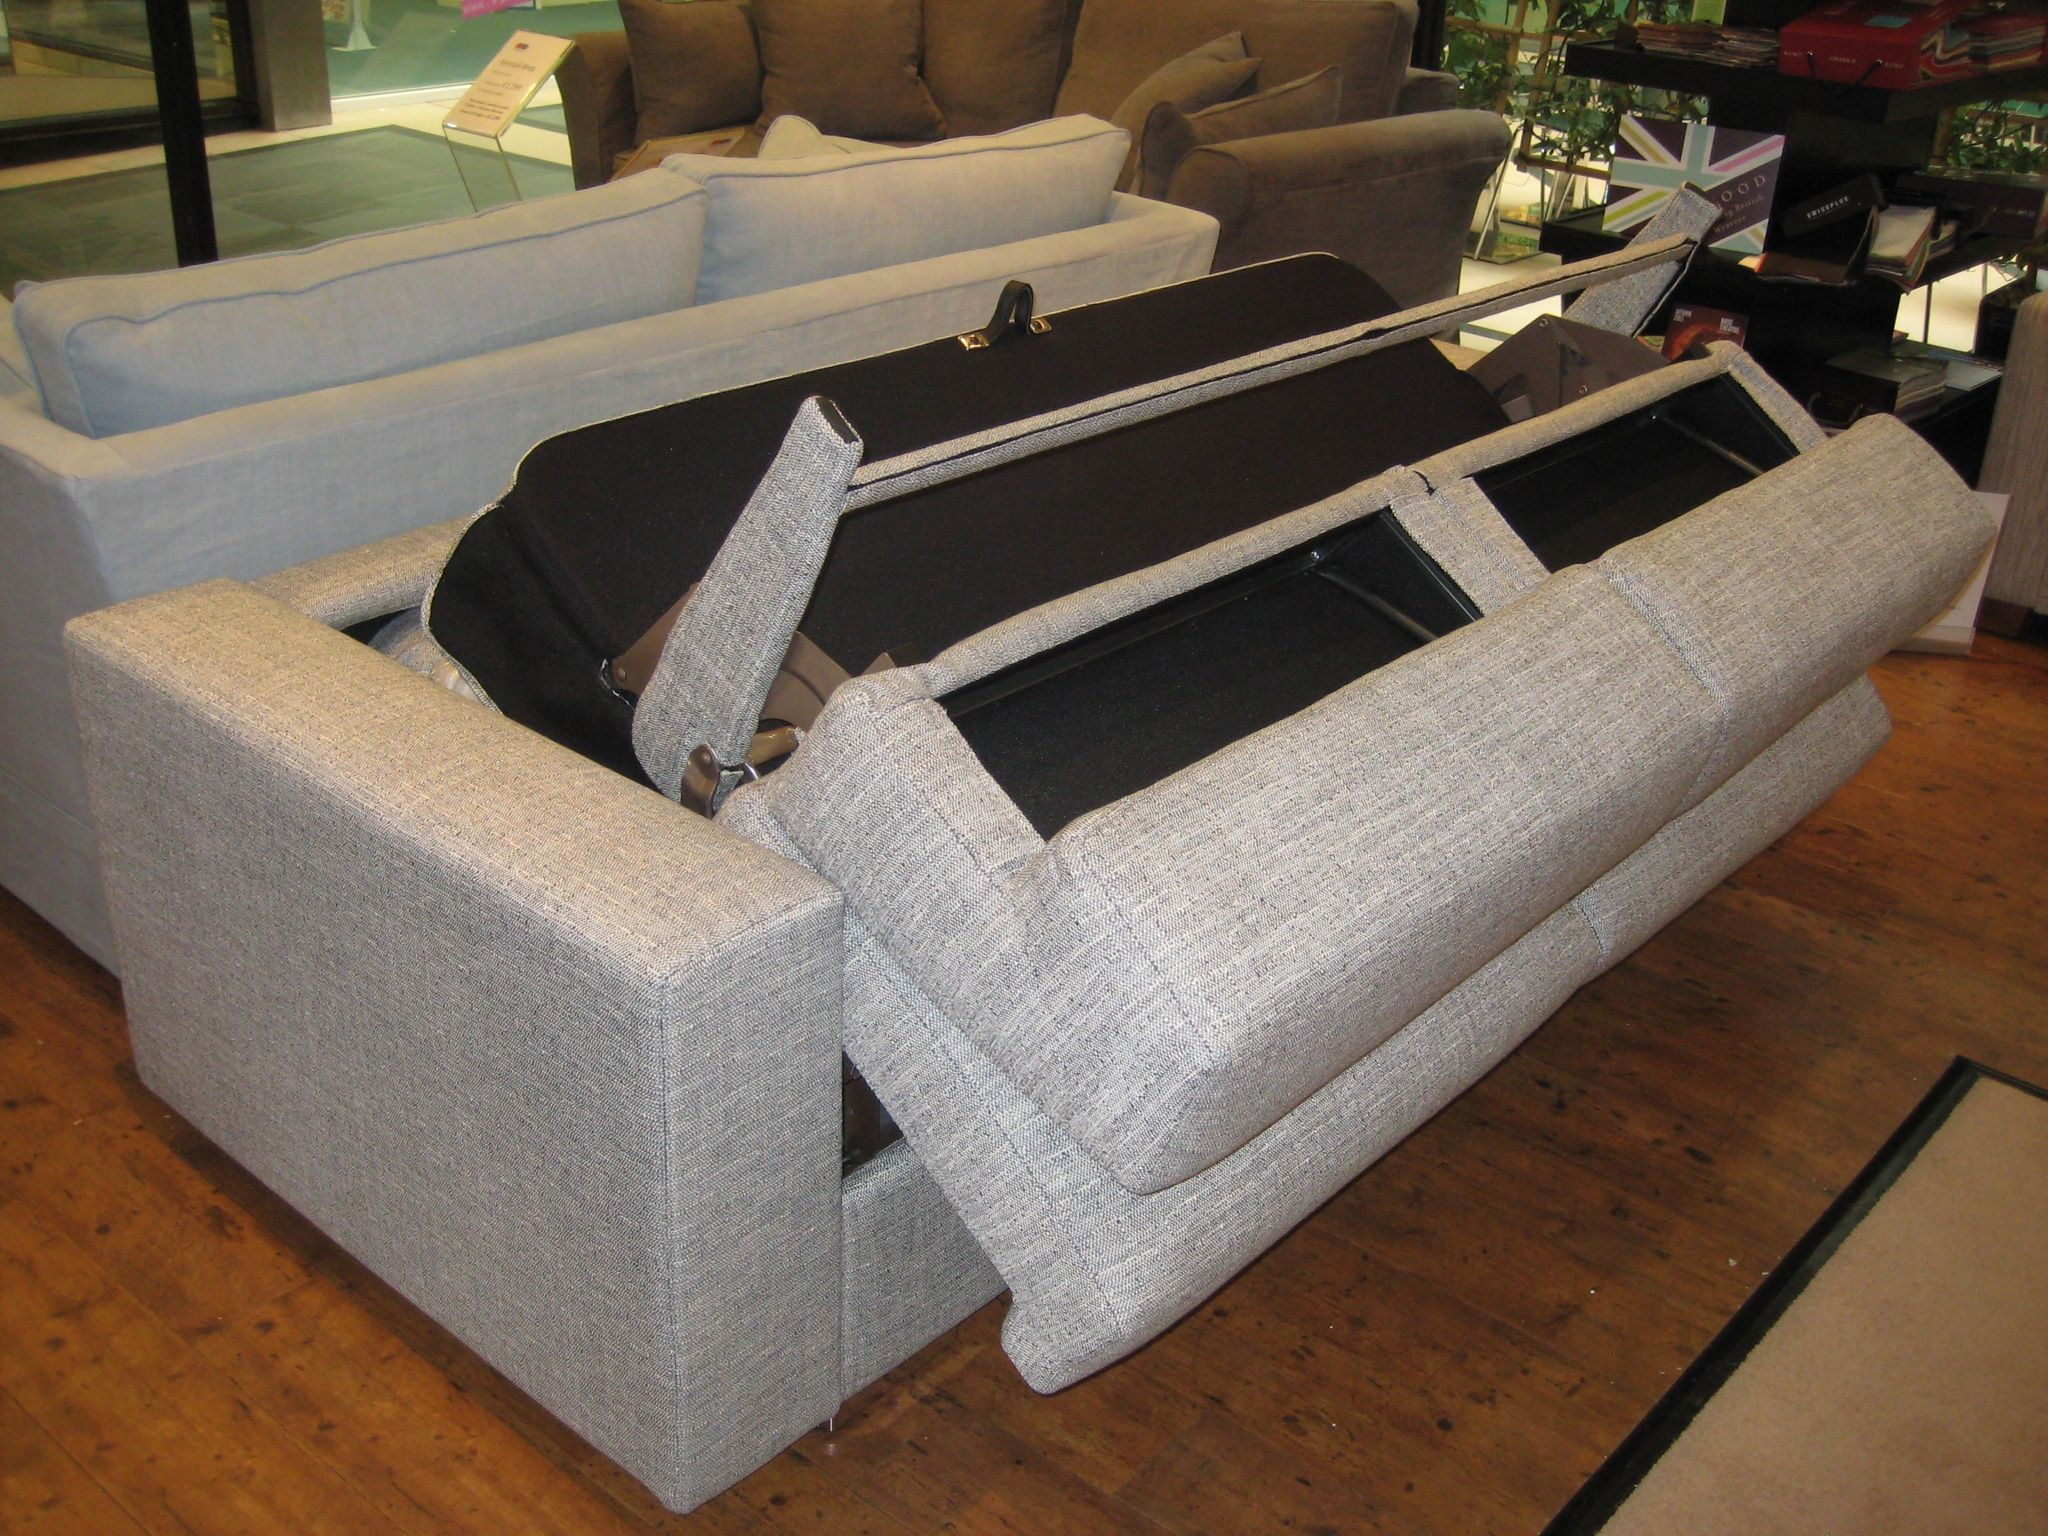 Easy to open and close actionluxury sofa beds dont